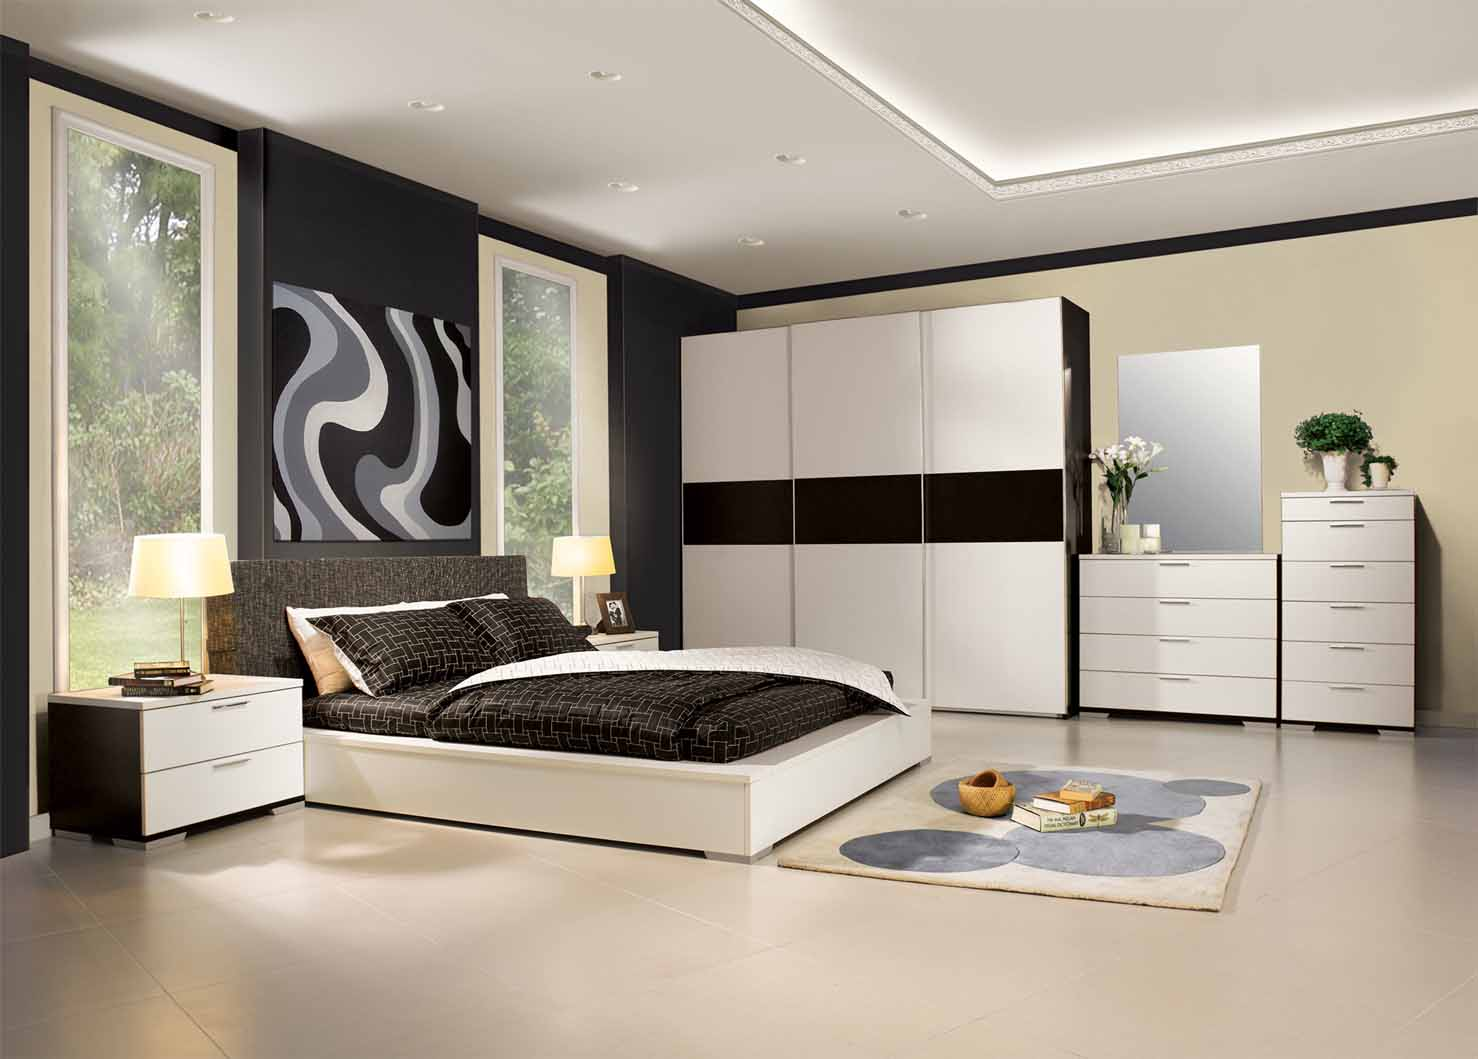 Modern bedroom design fouadtalal for New bedroom decorating ideas